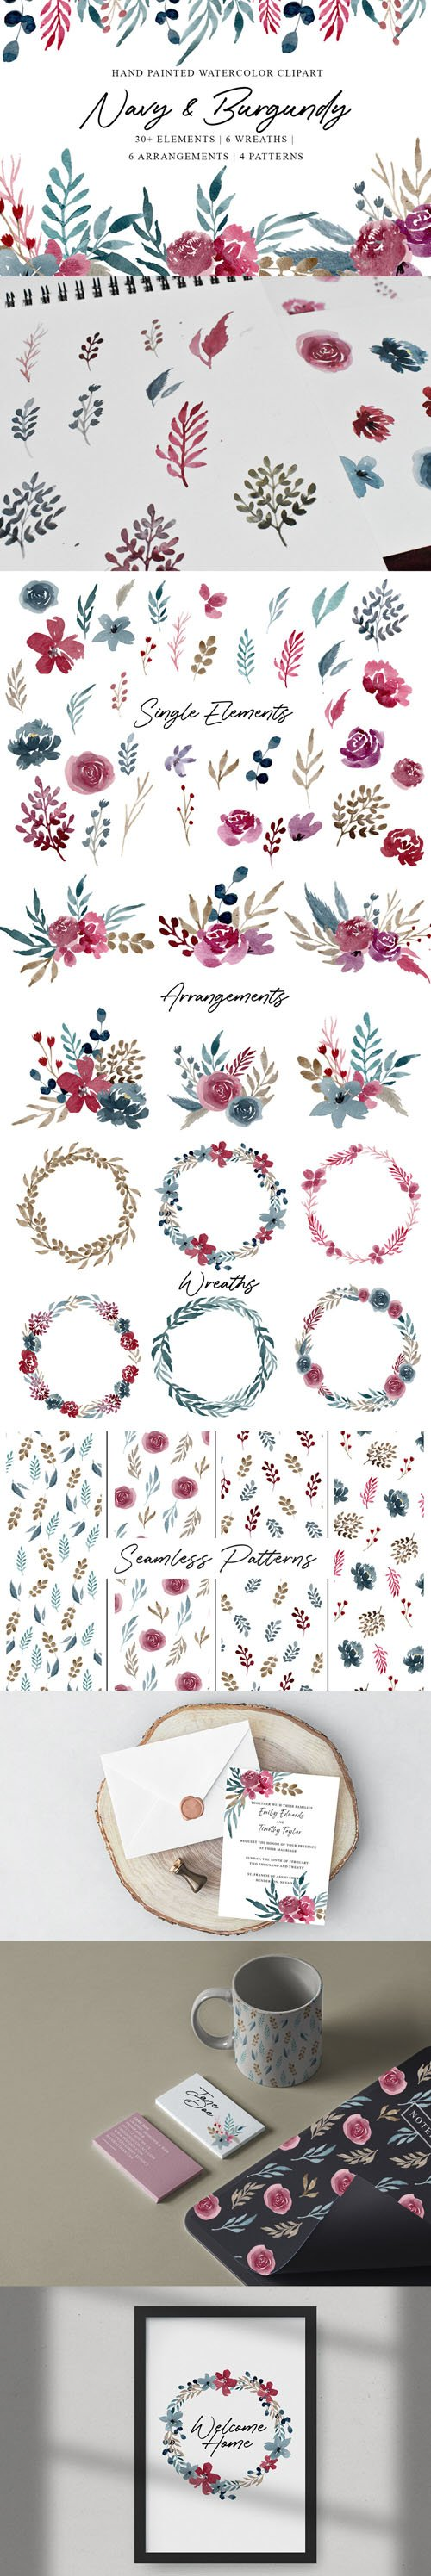 Navy & Burgundy - Hand Painted Watercolor Clipart PNG